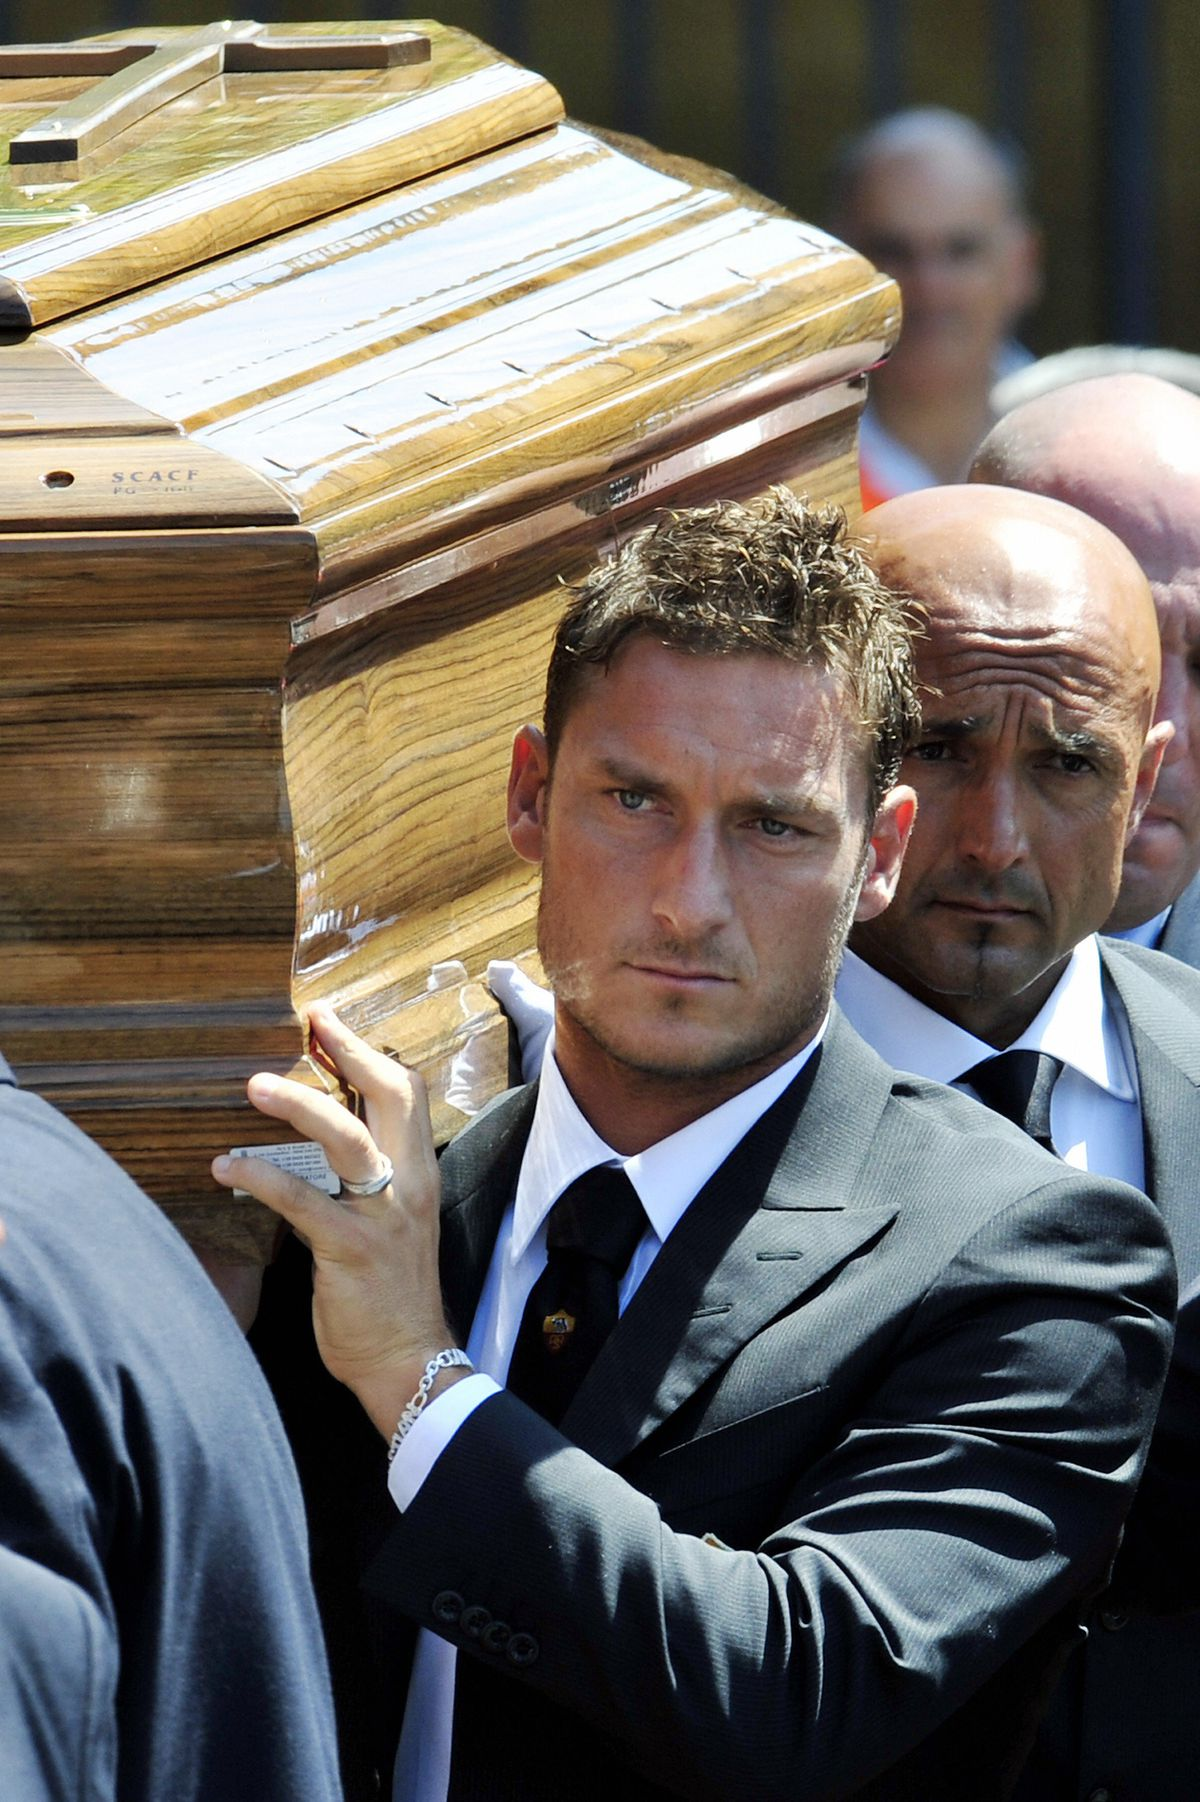 The coffin of the AS Roma football club